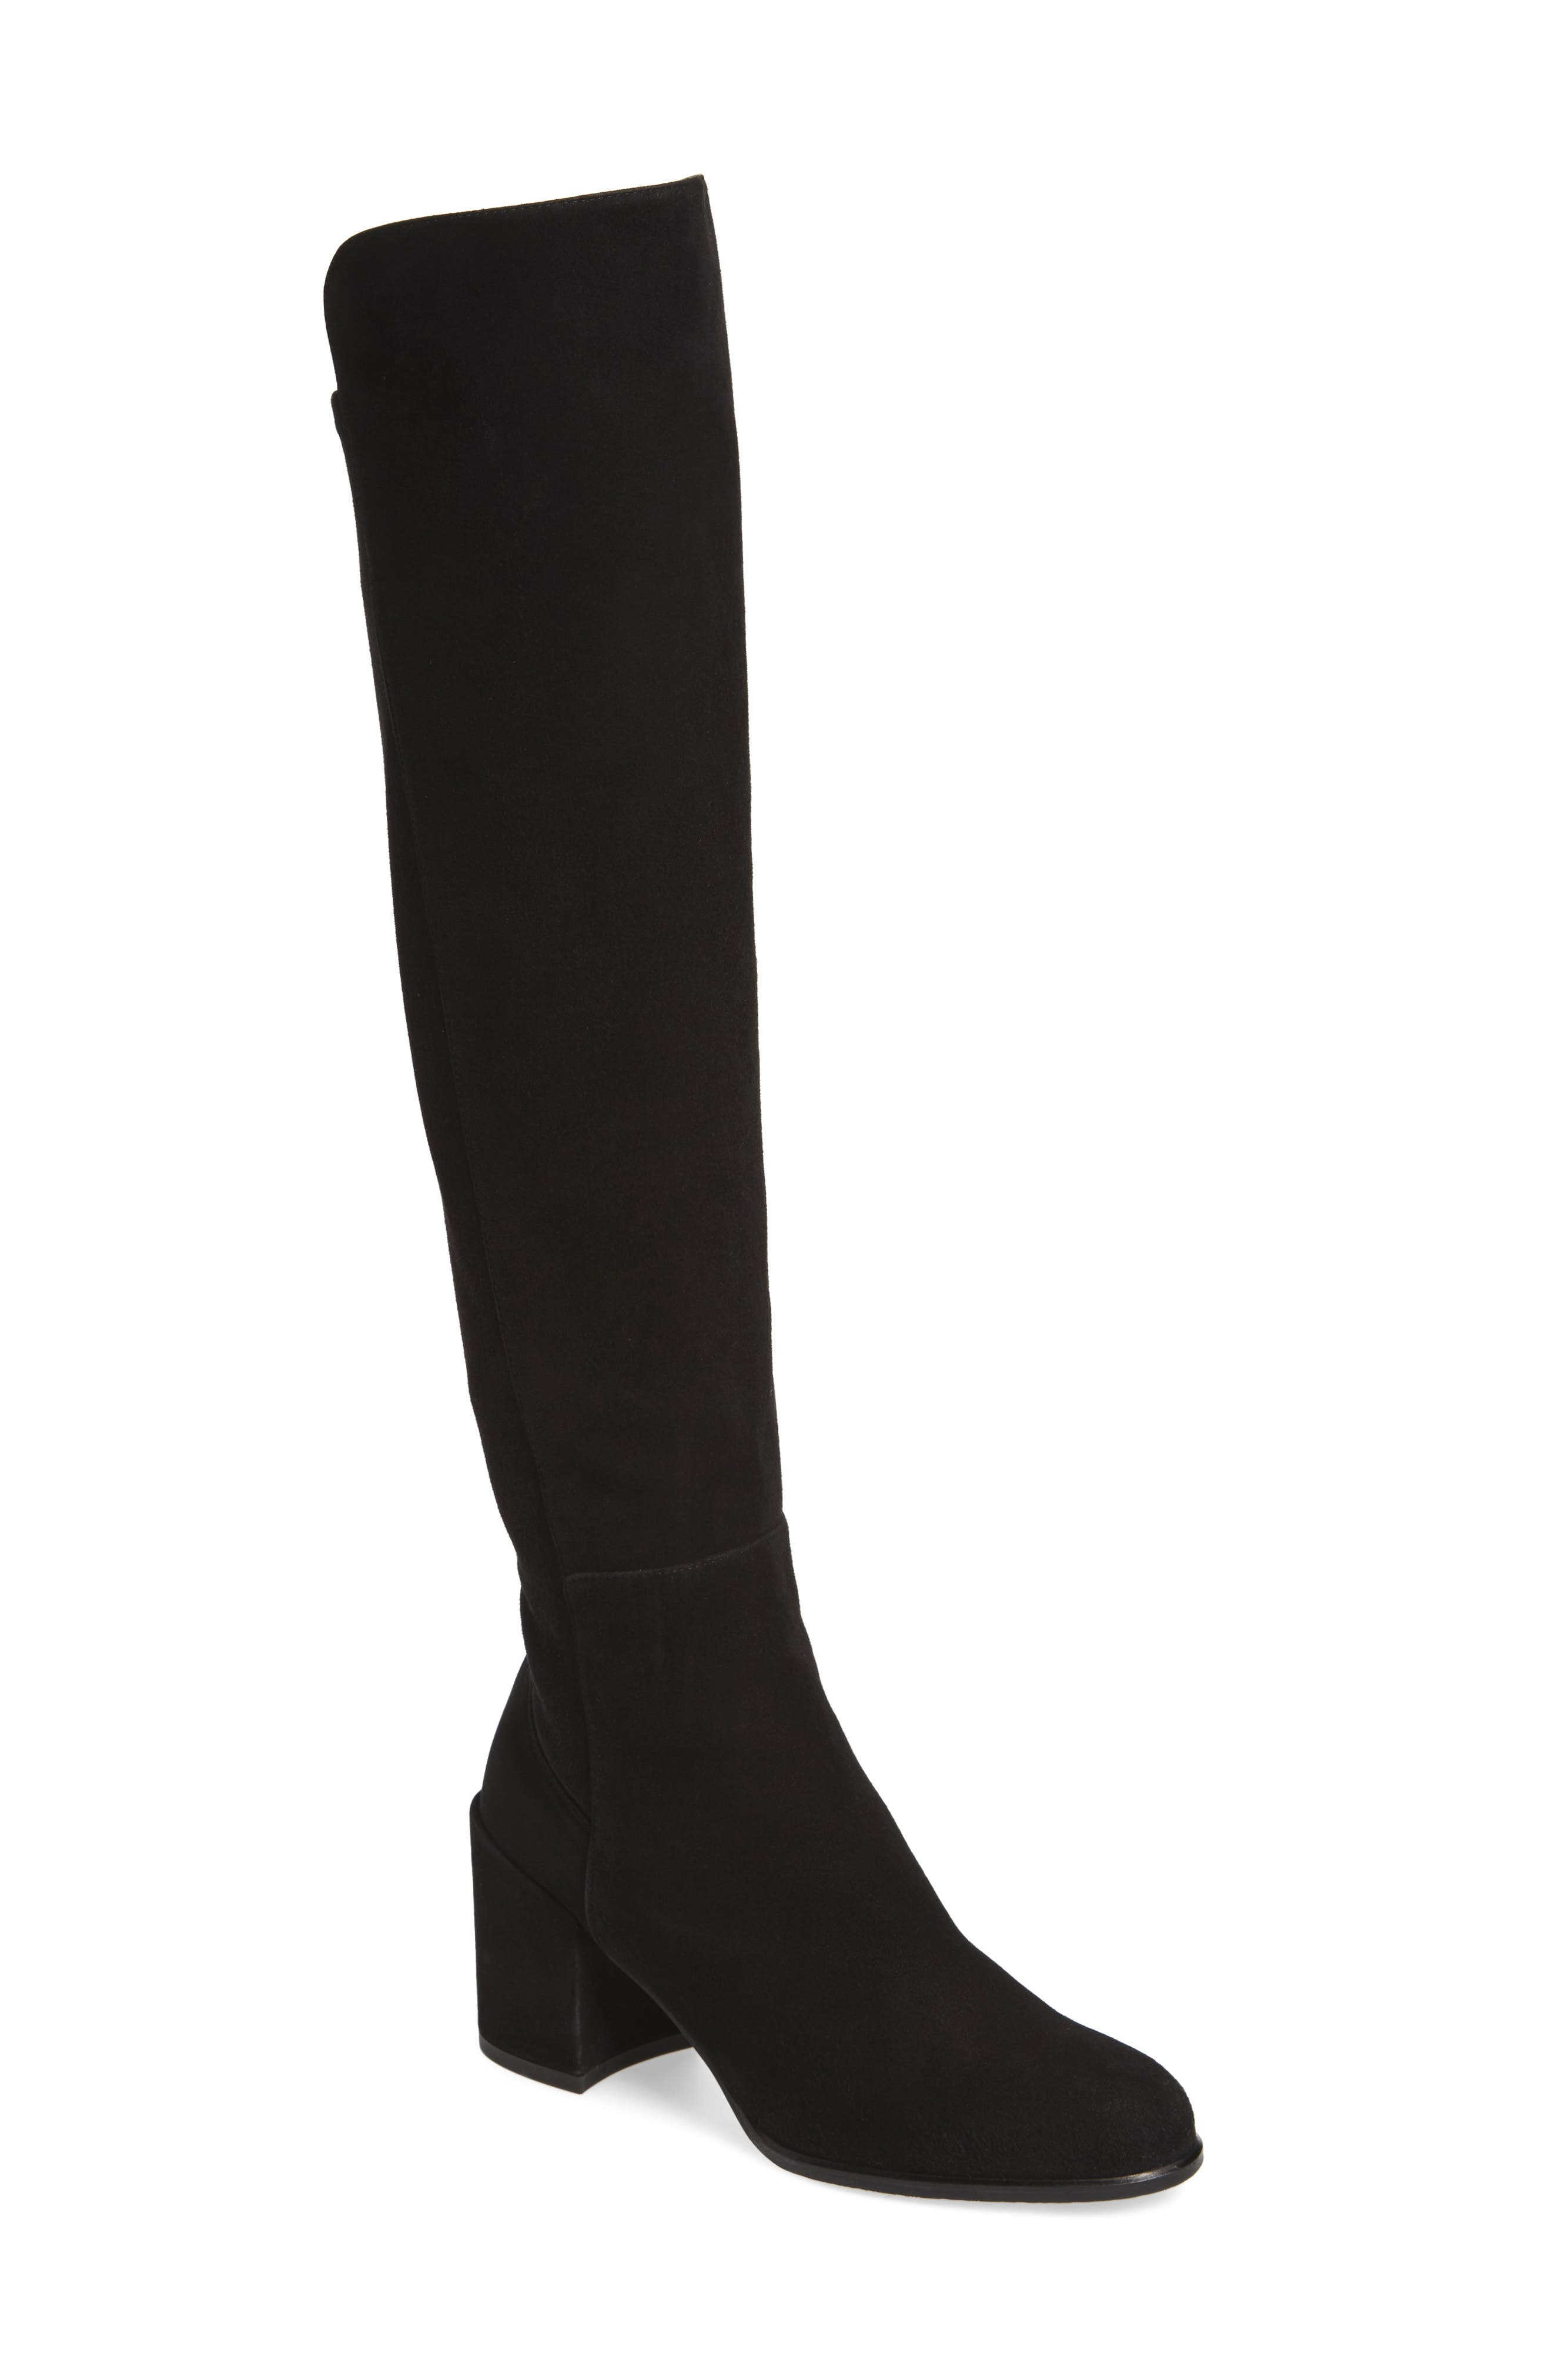 Alljack Over the Knee Boot,                             Main thumbnail 1, color,                             002